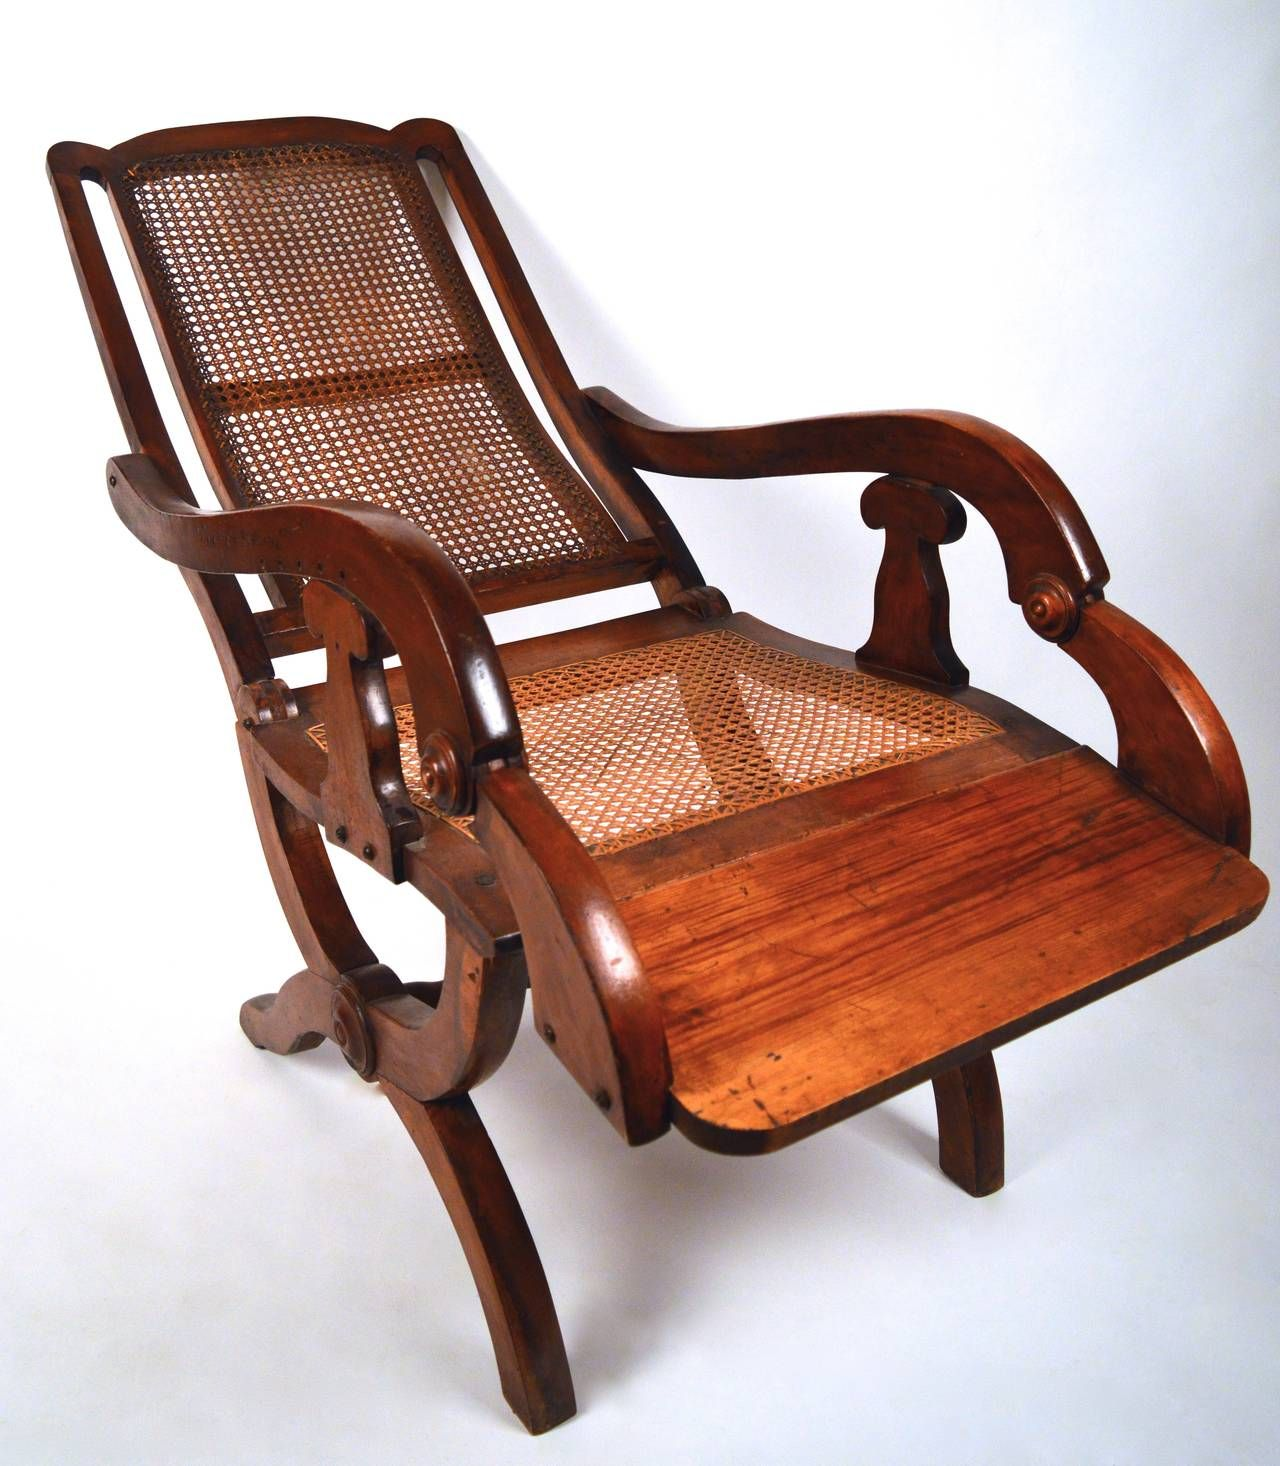 Antique lounge chairs - 19th Century British Colonial Reclining Chair From A Unique Collection Of Antique And Modern Lounge